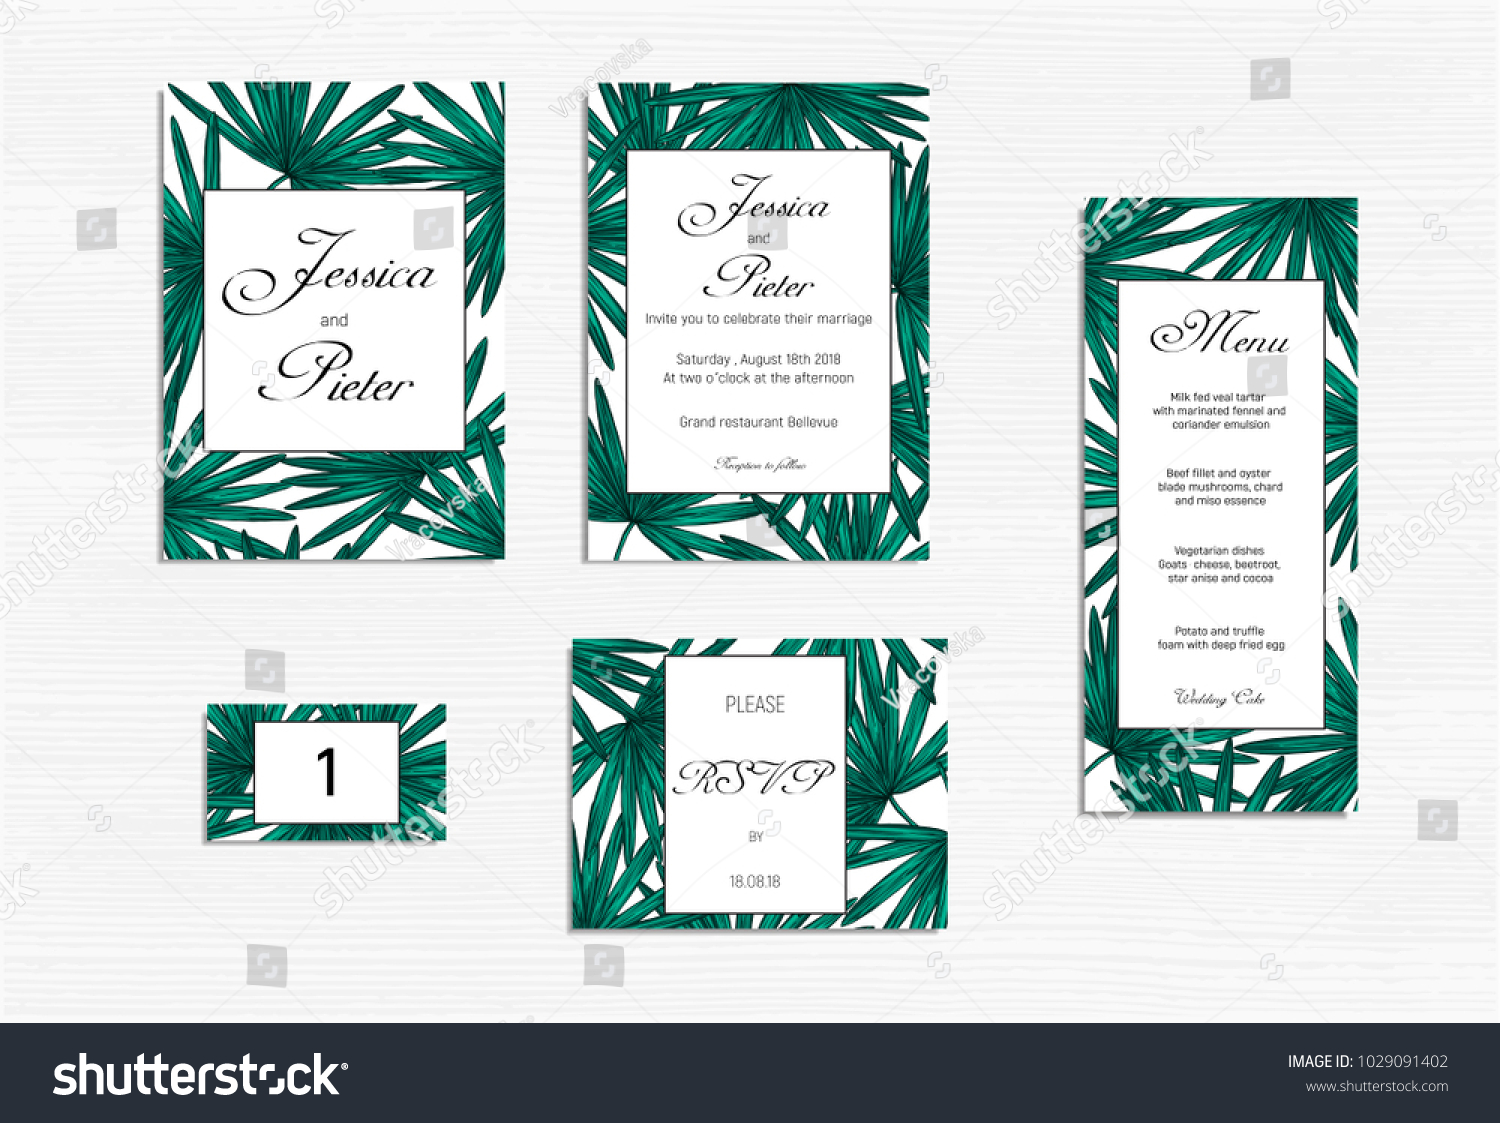 Wedding Invitations Set Mockup Tropical Design Stock Vector - Wedding invitation templates: wedding place card size